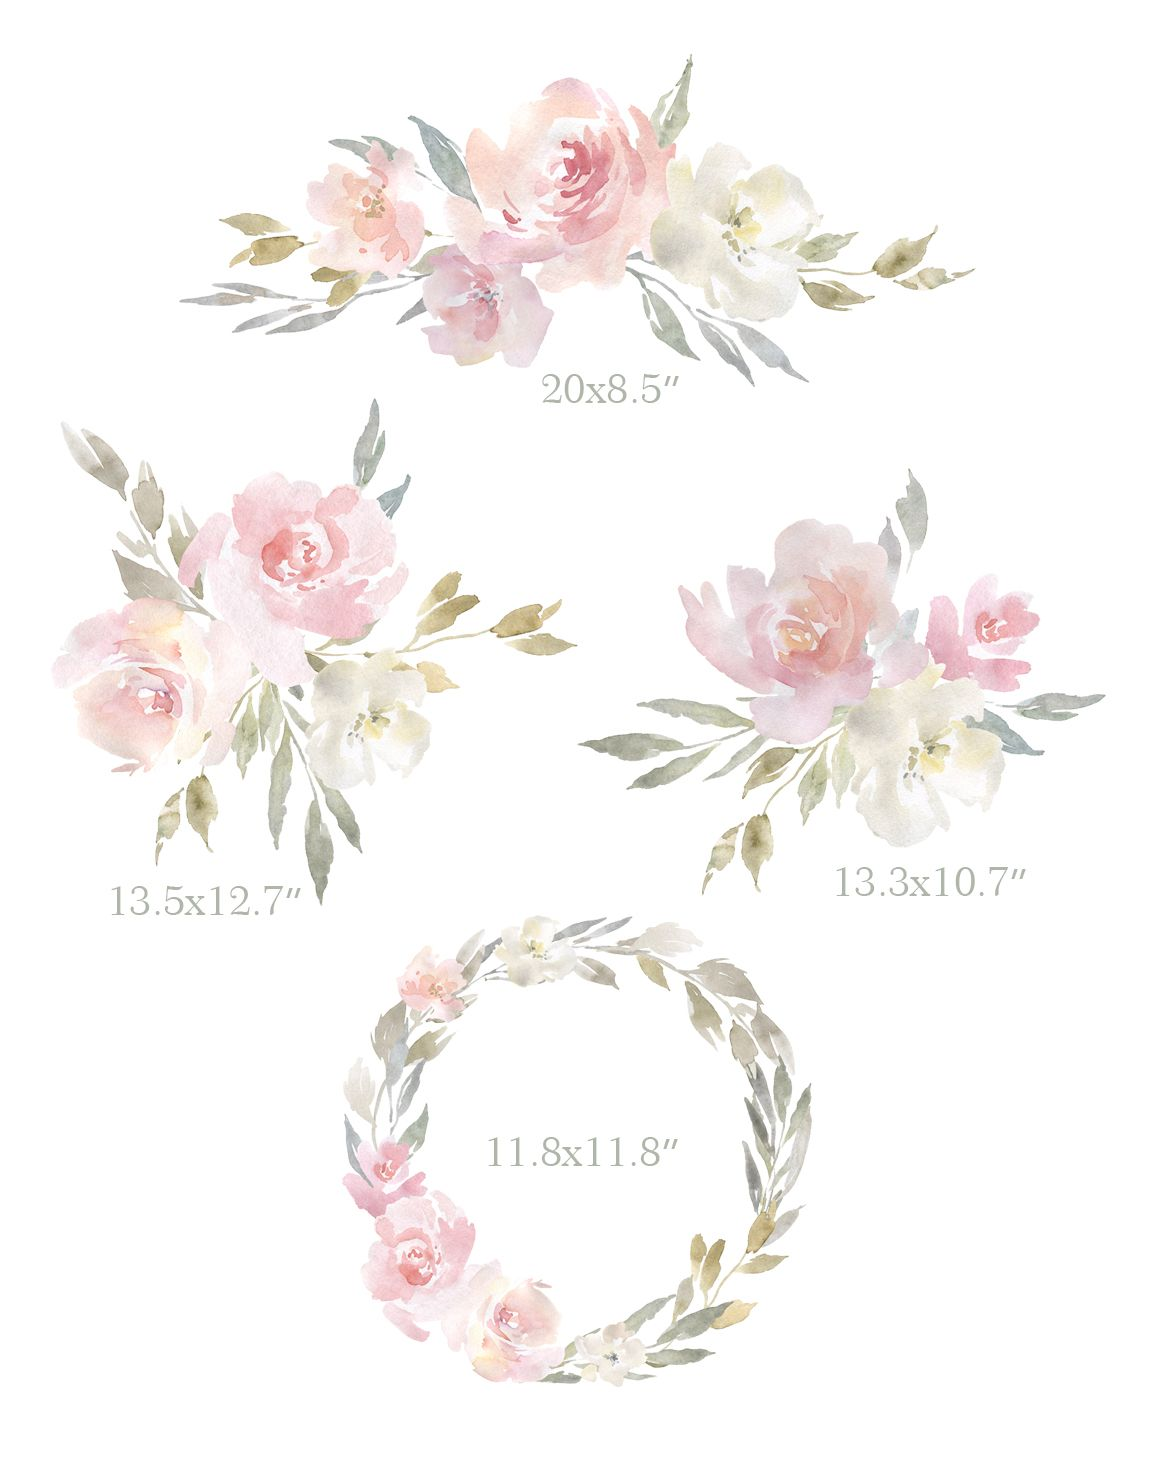 Blush Pink Watercolor Flowers Bouquets Wreath Png In 2020 Pink